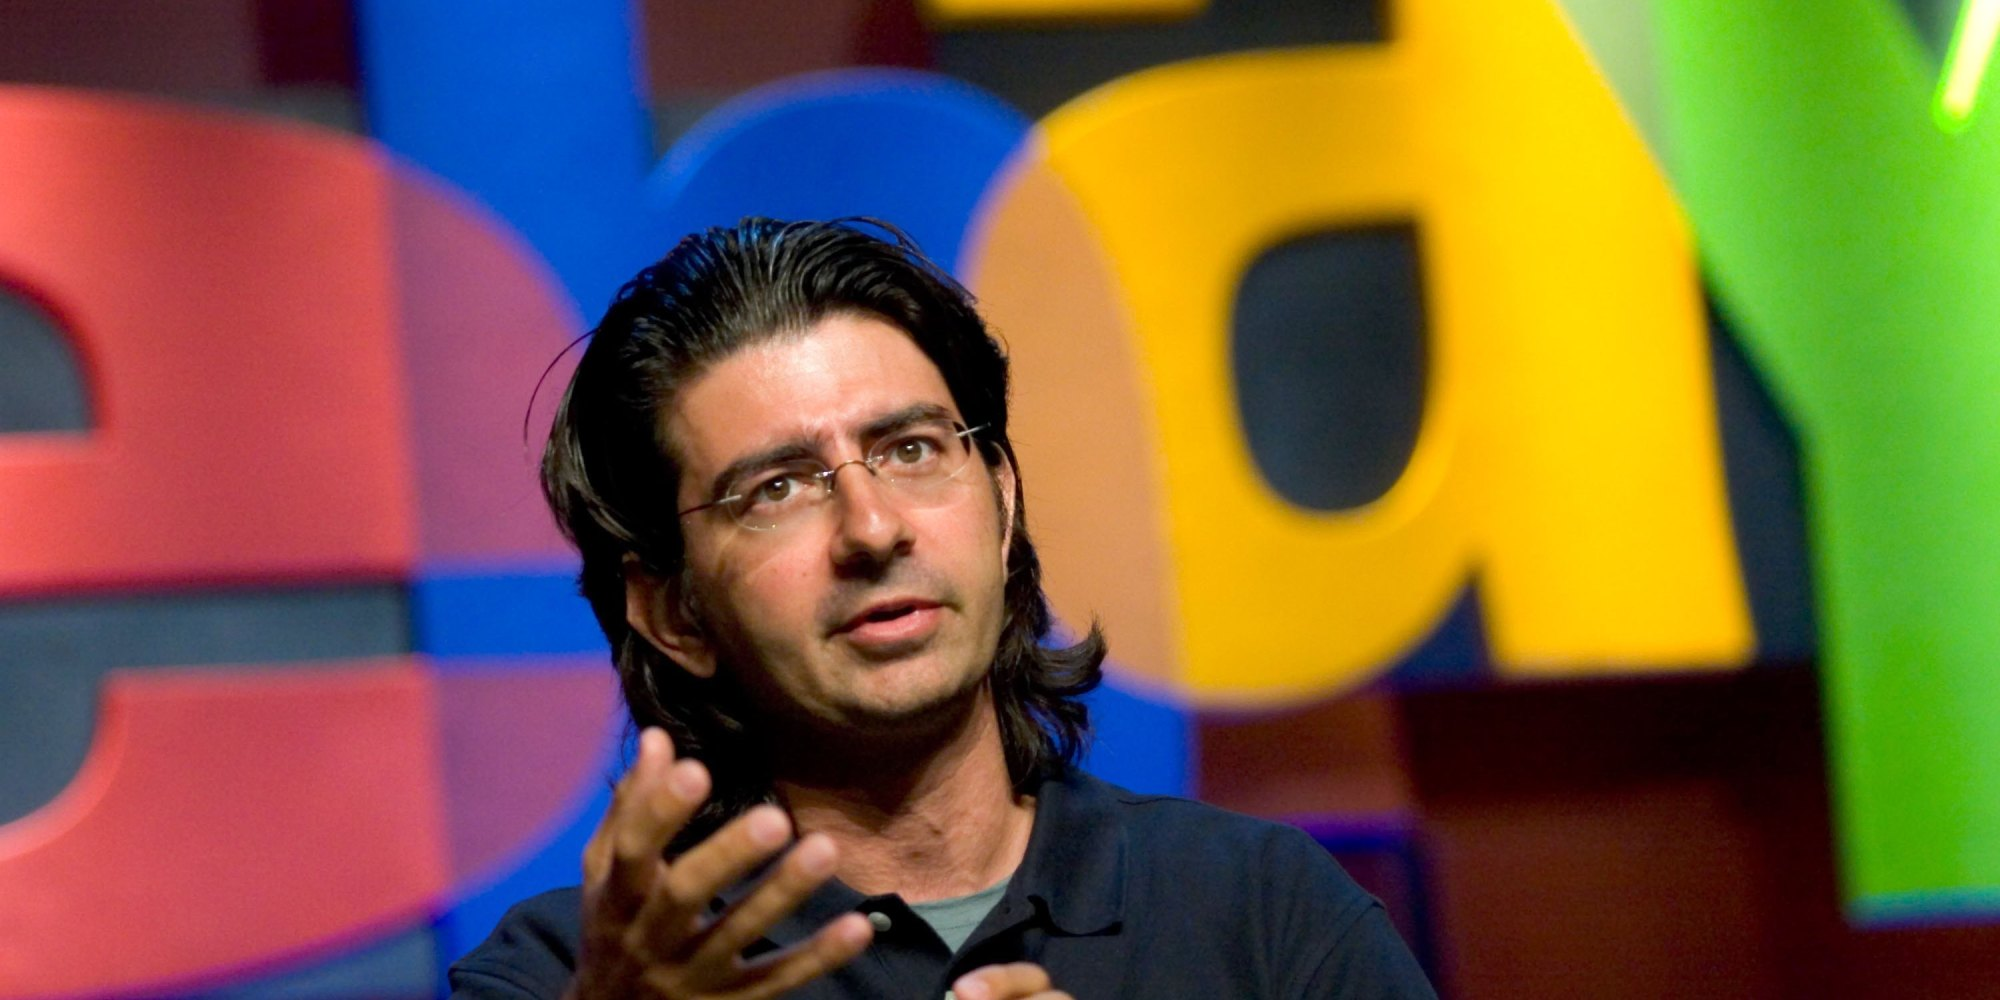 Image result for Pierre Omidyar (eBay)